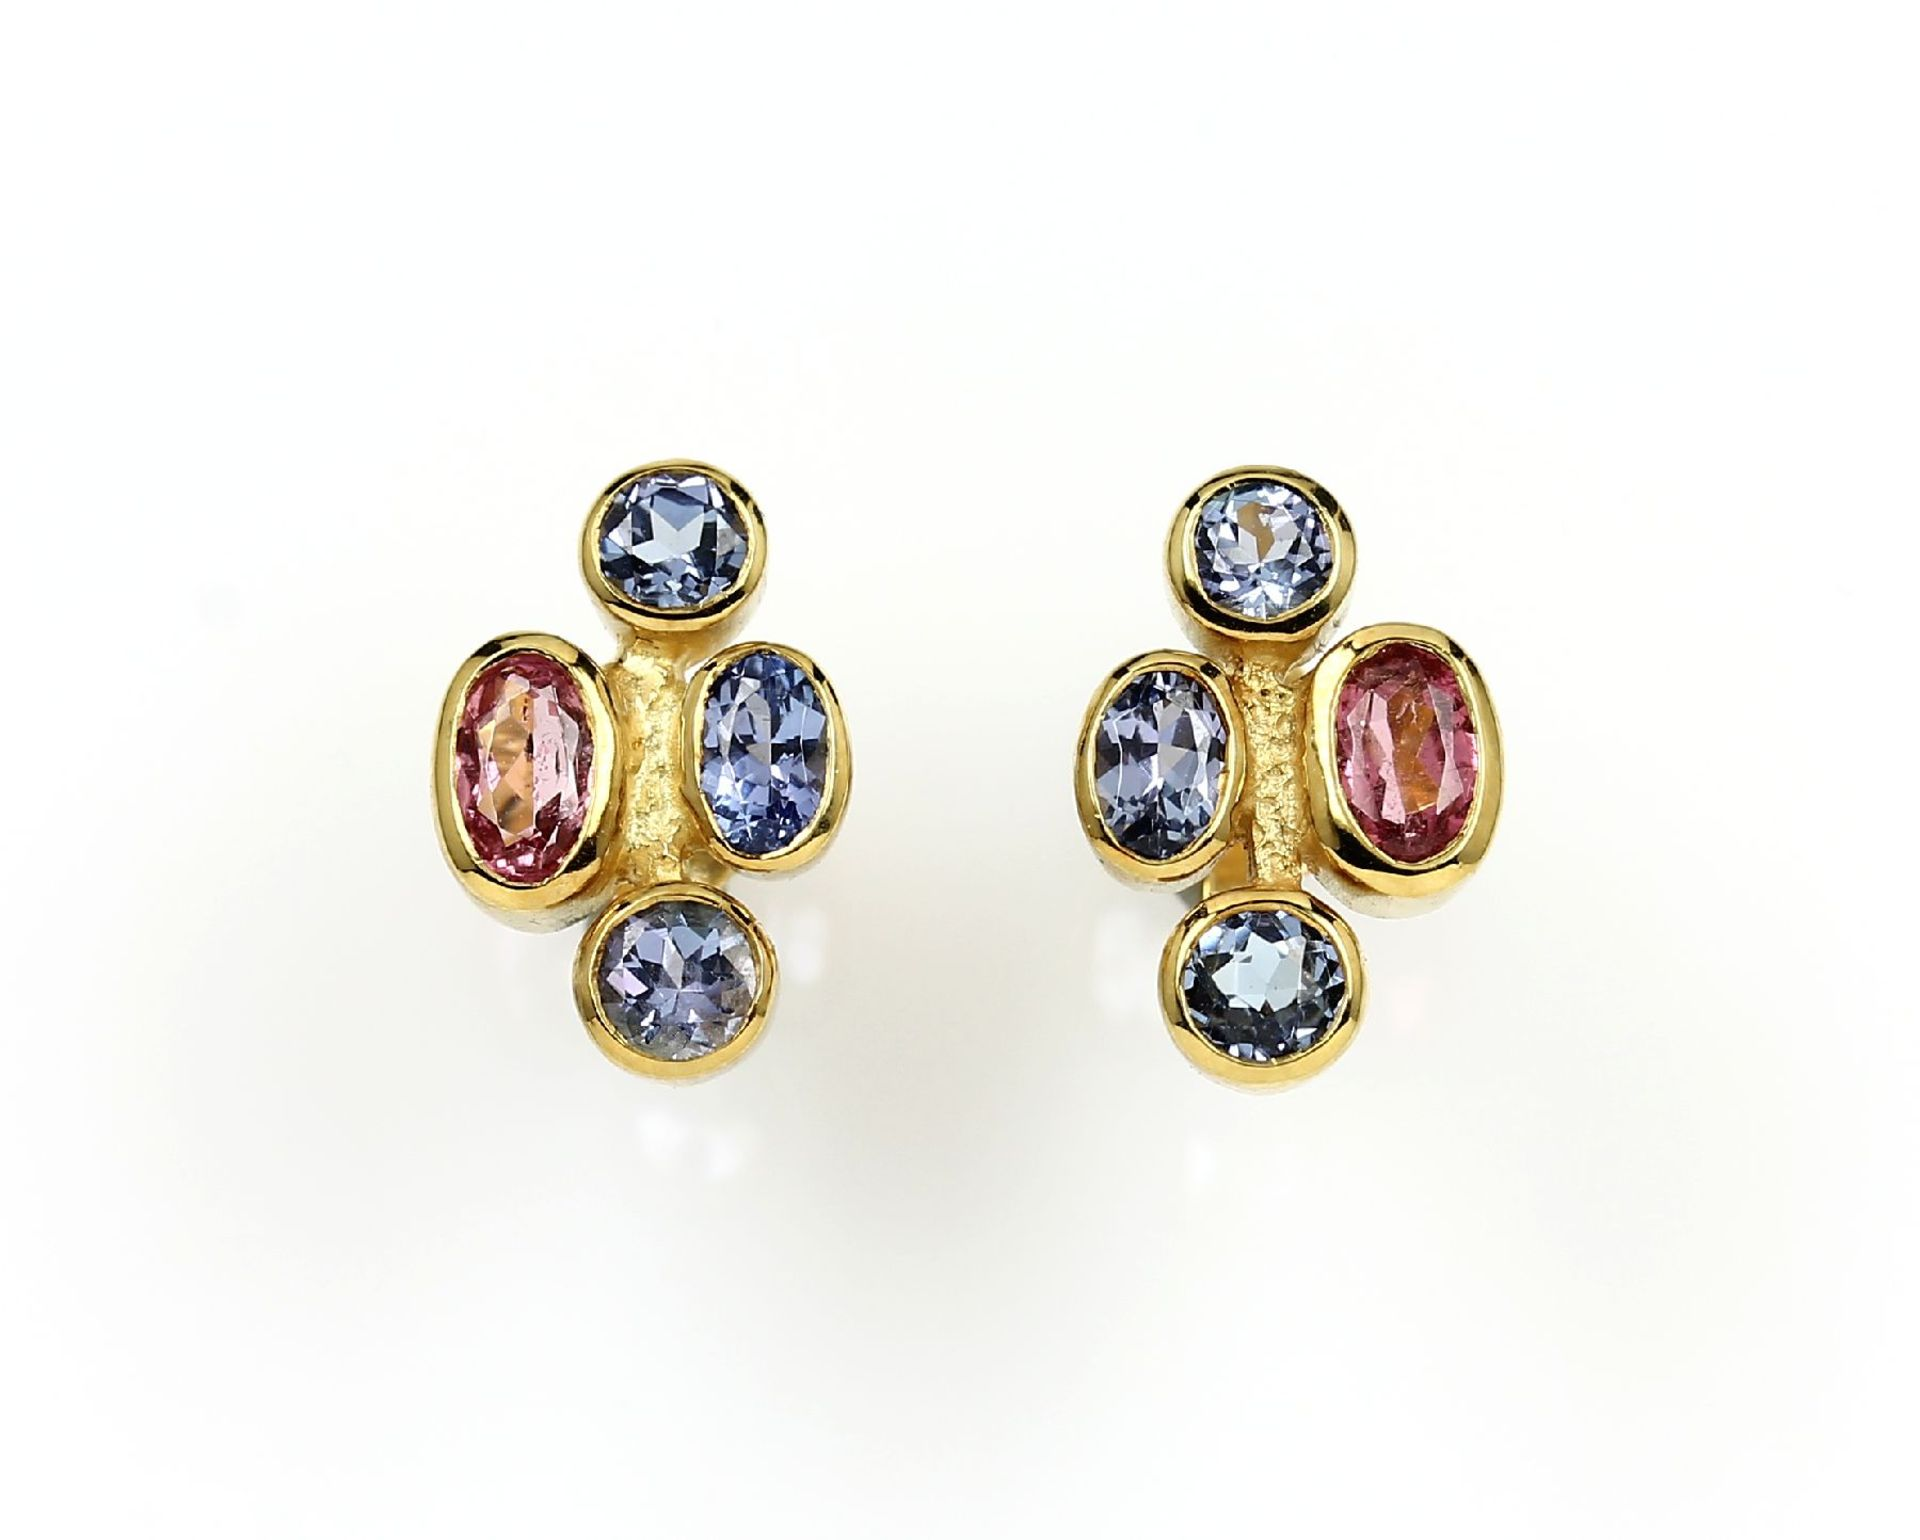 Los 61549 - Pair of 14 kt gold earrings with coloured stones , YG 585/000, round and oval bevelledtanzanites